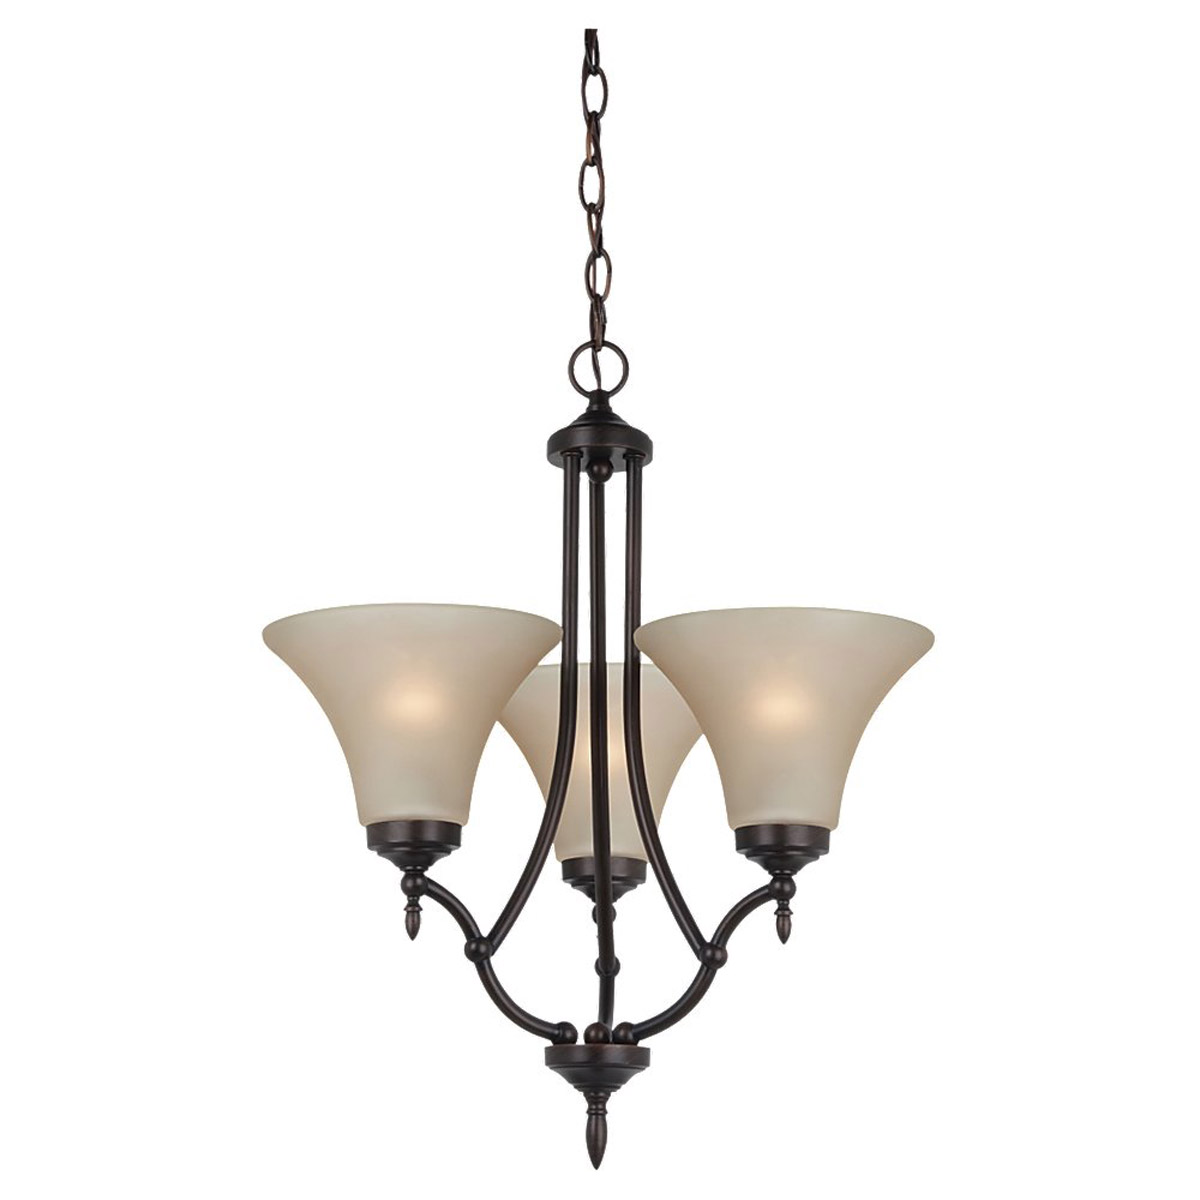 Sea Gull Lighting Montreal 3 Light Chandelier in Burnt Sienna 31180-710 photo